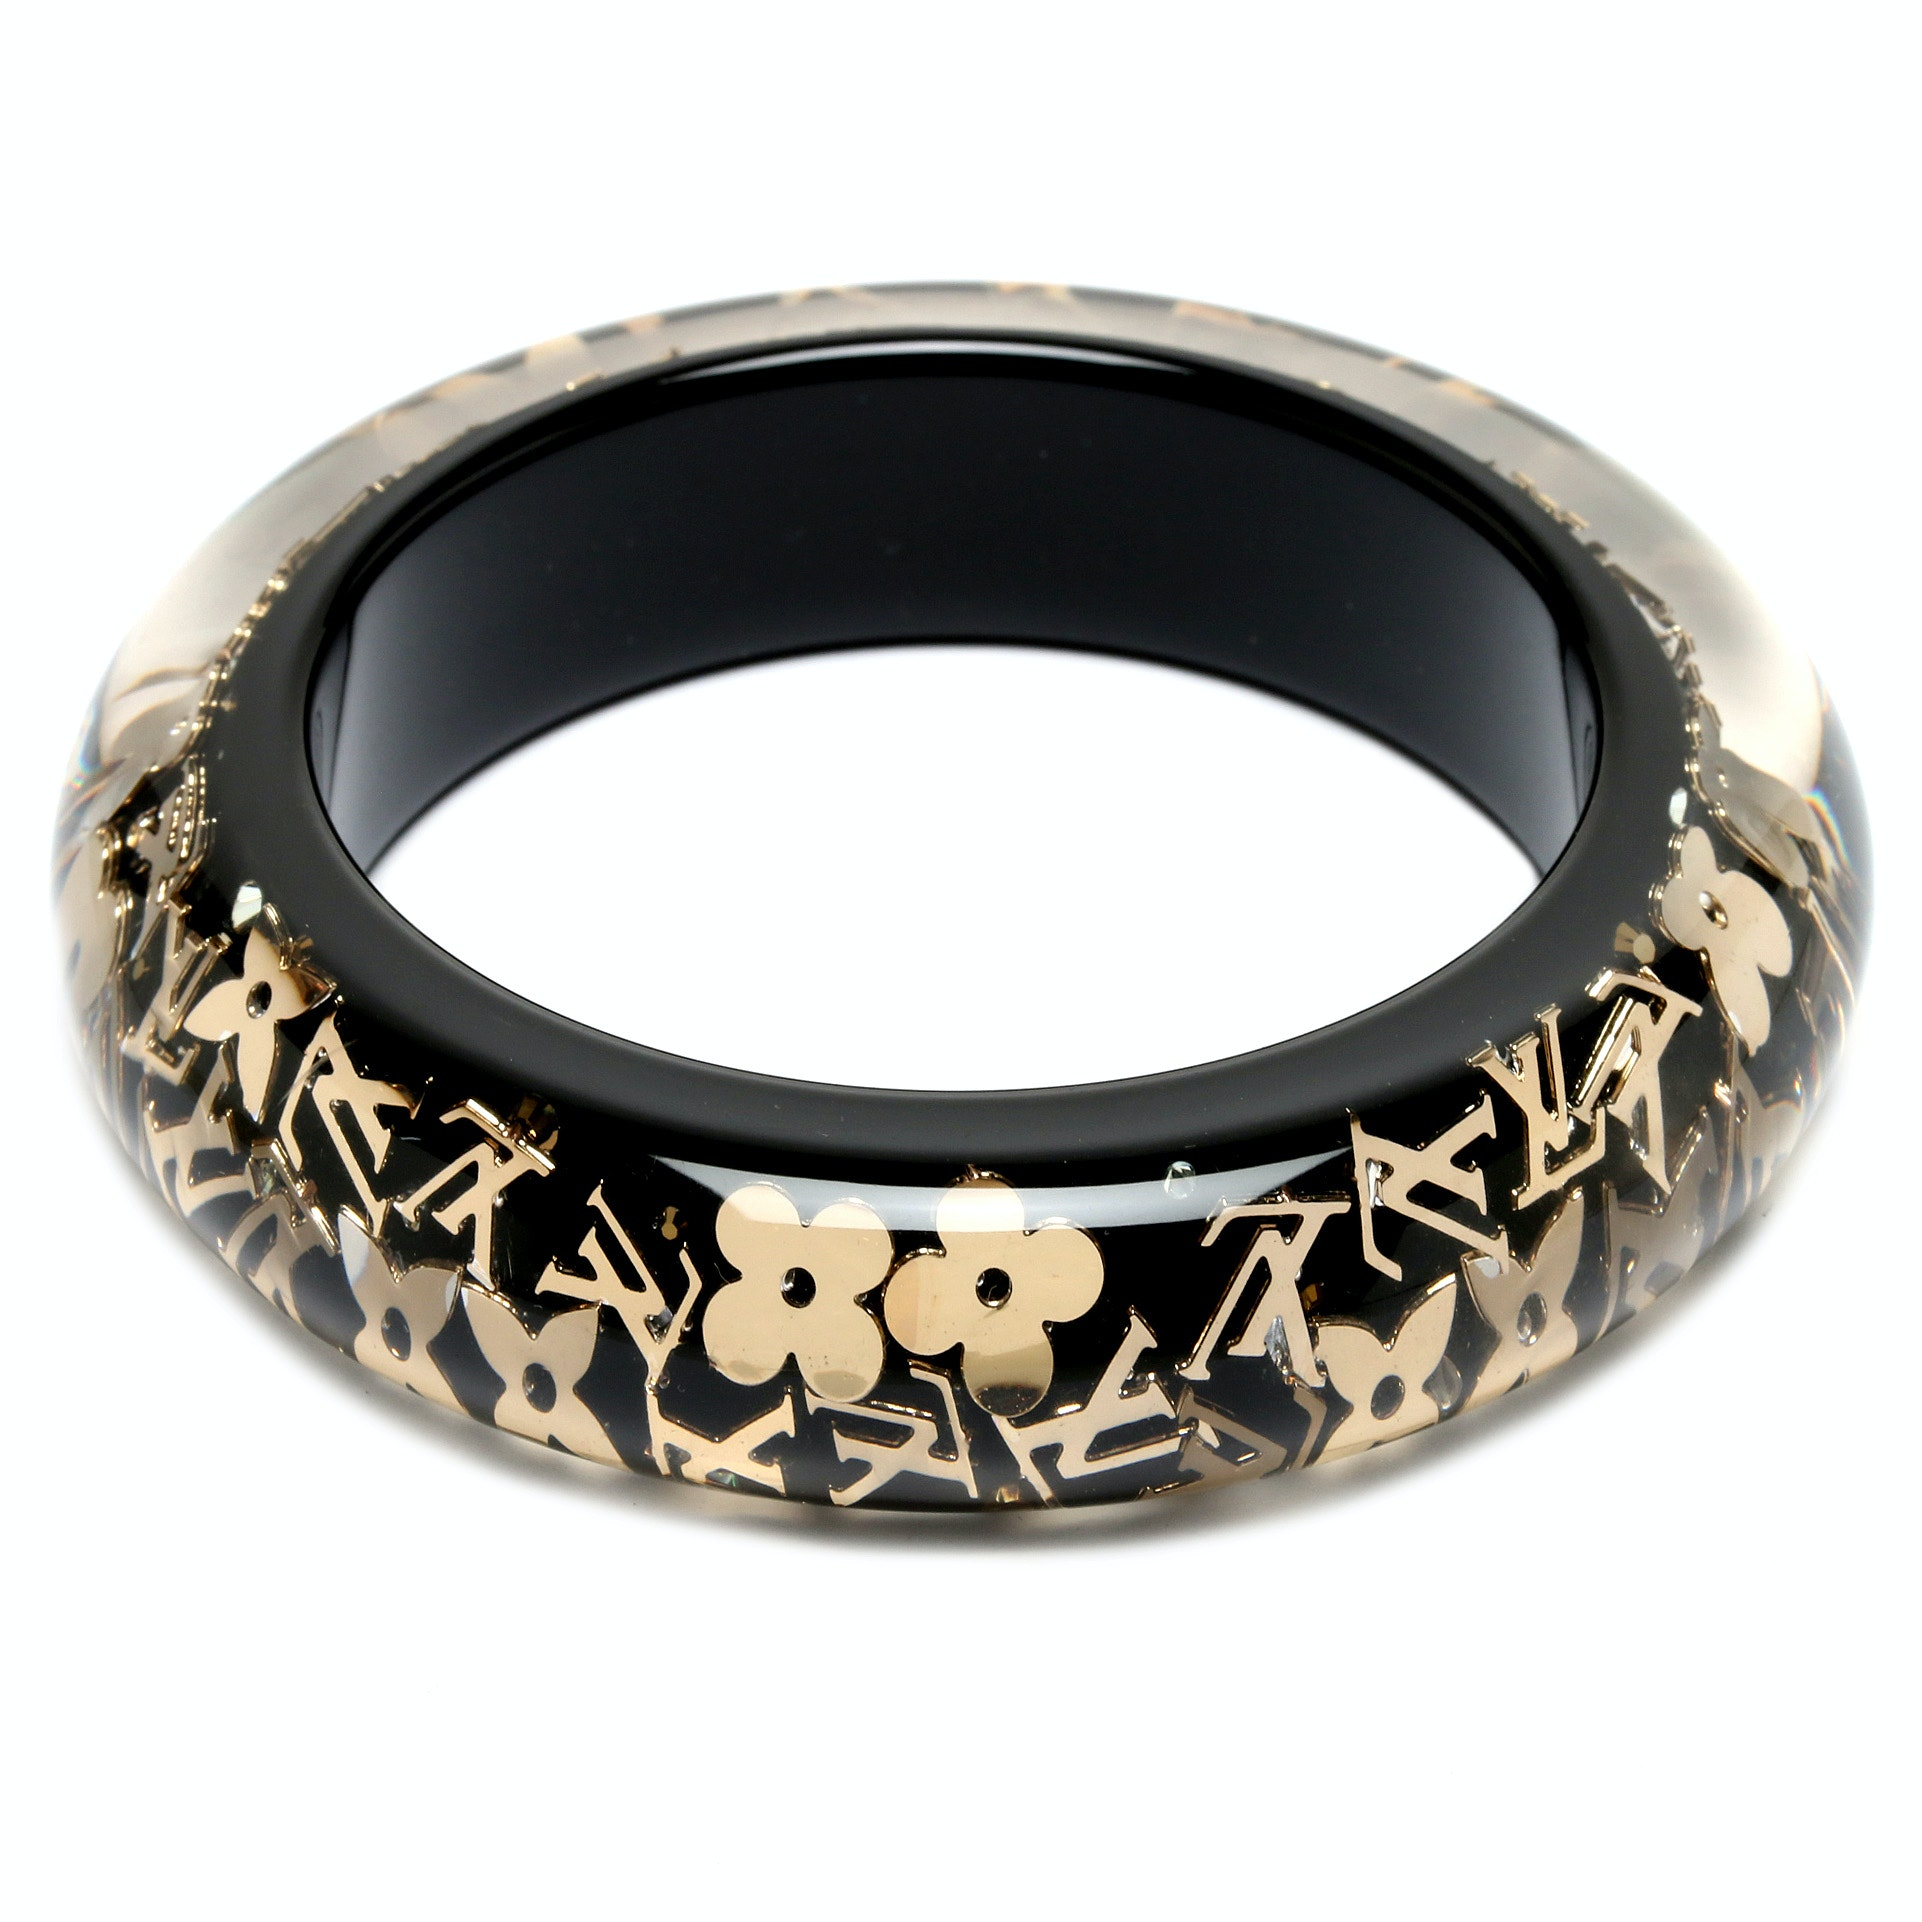 Louis Vuitton Black and Gold Resin Inclusion Bangle with Glass Crystal Accents